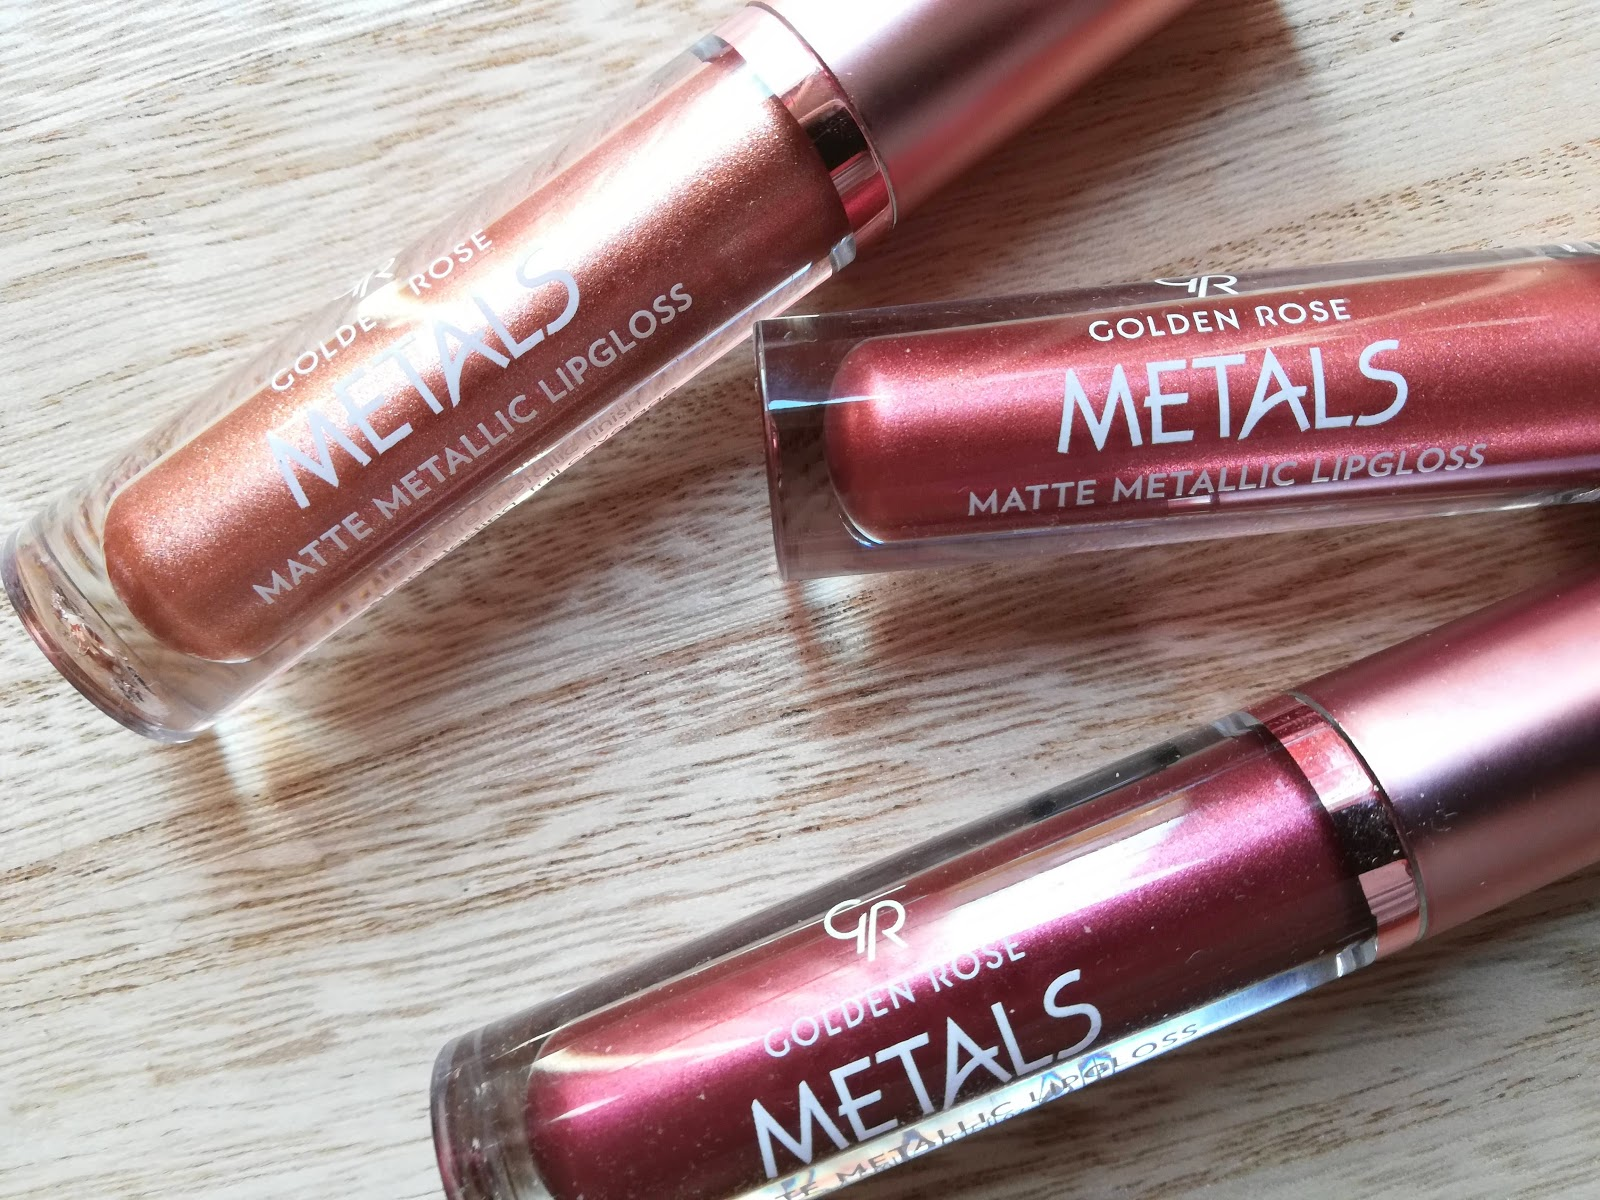 Metals Matte Metallic Lipgloss de Golden Rose